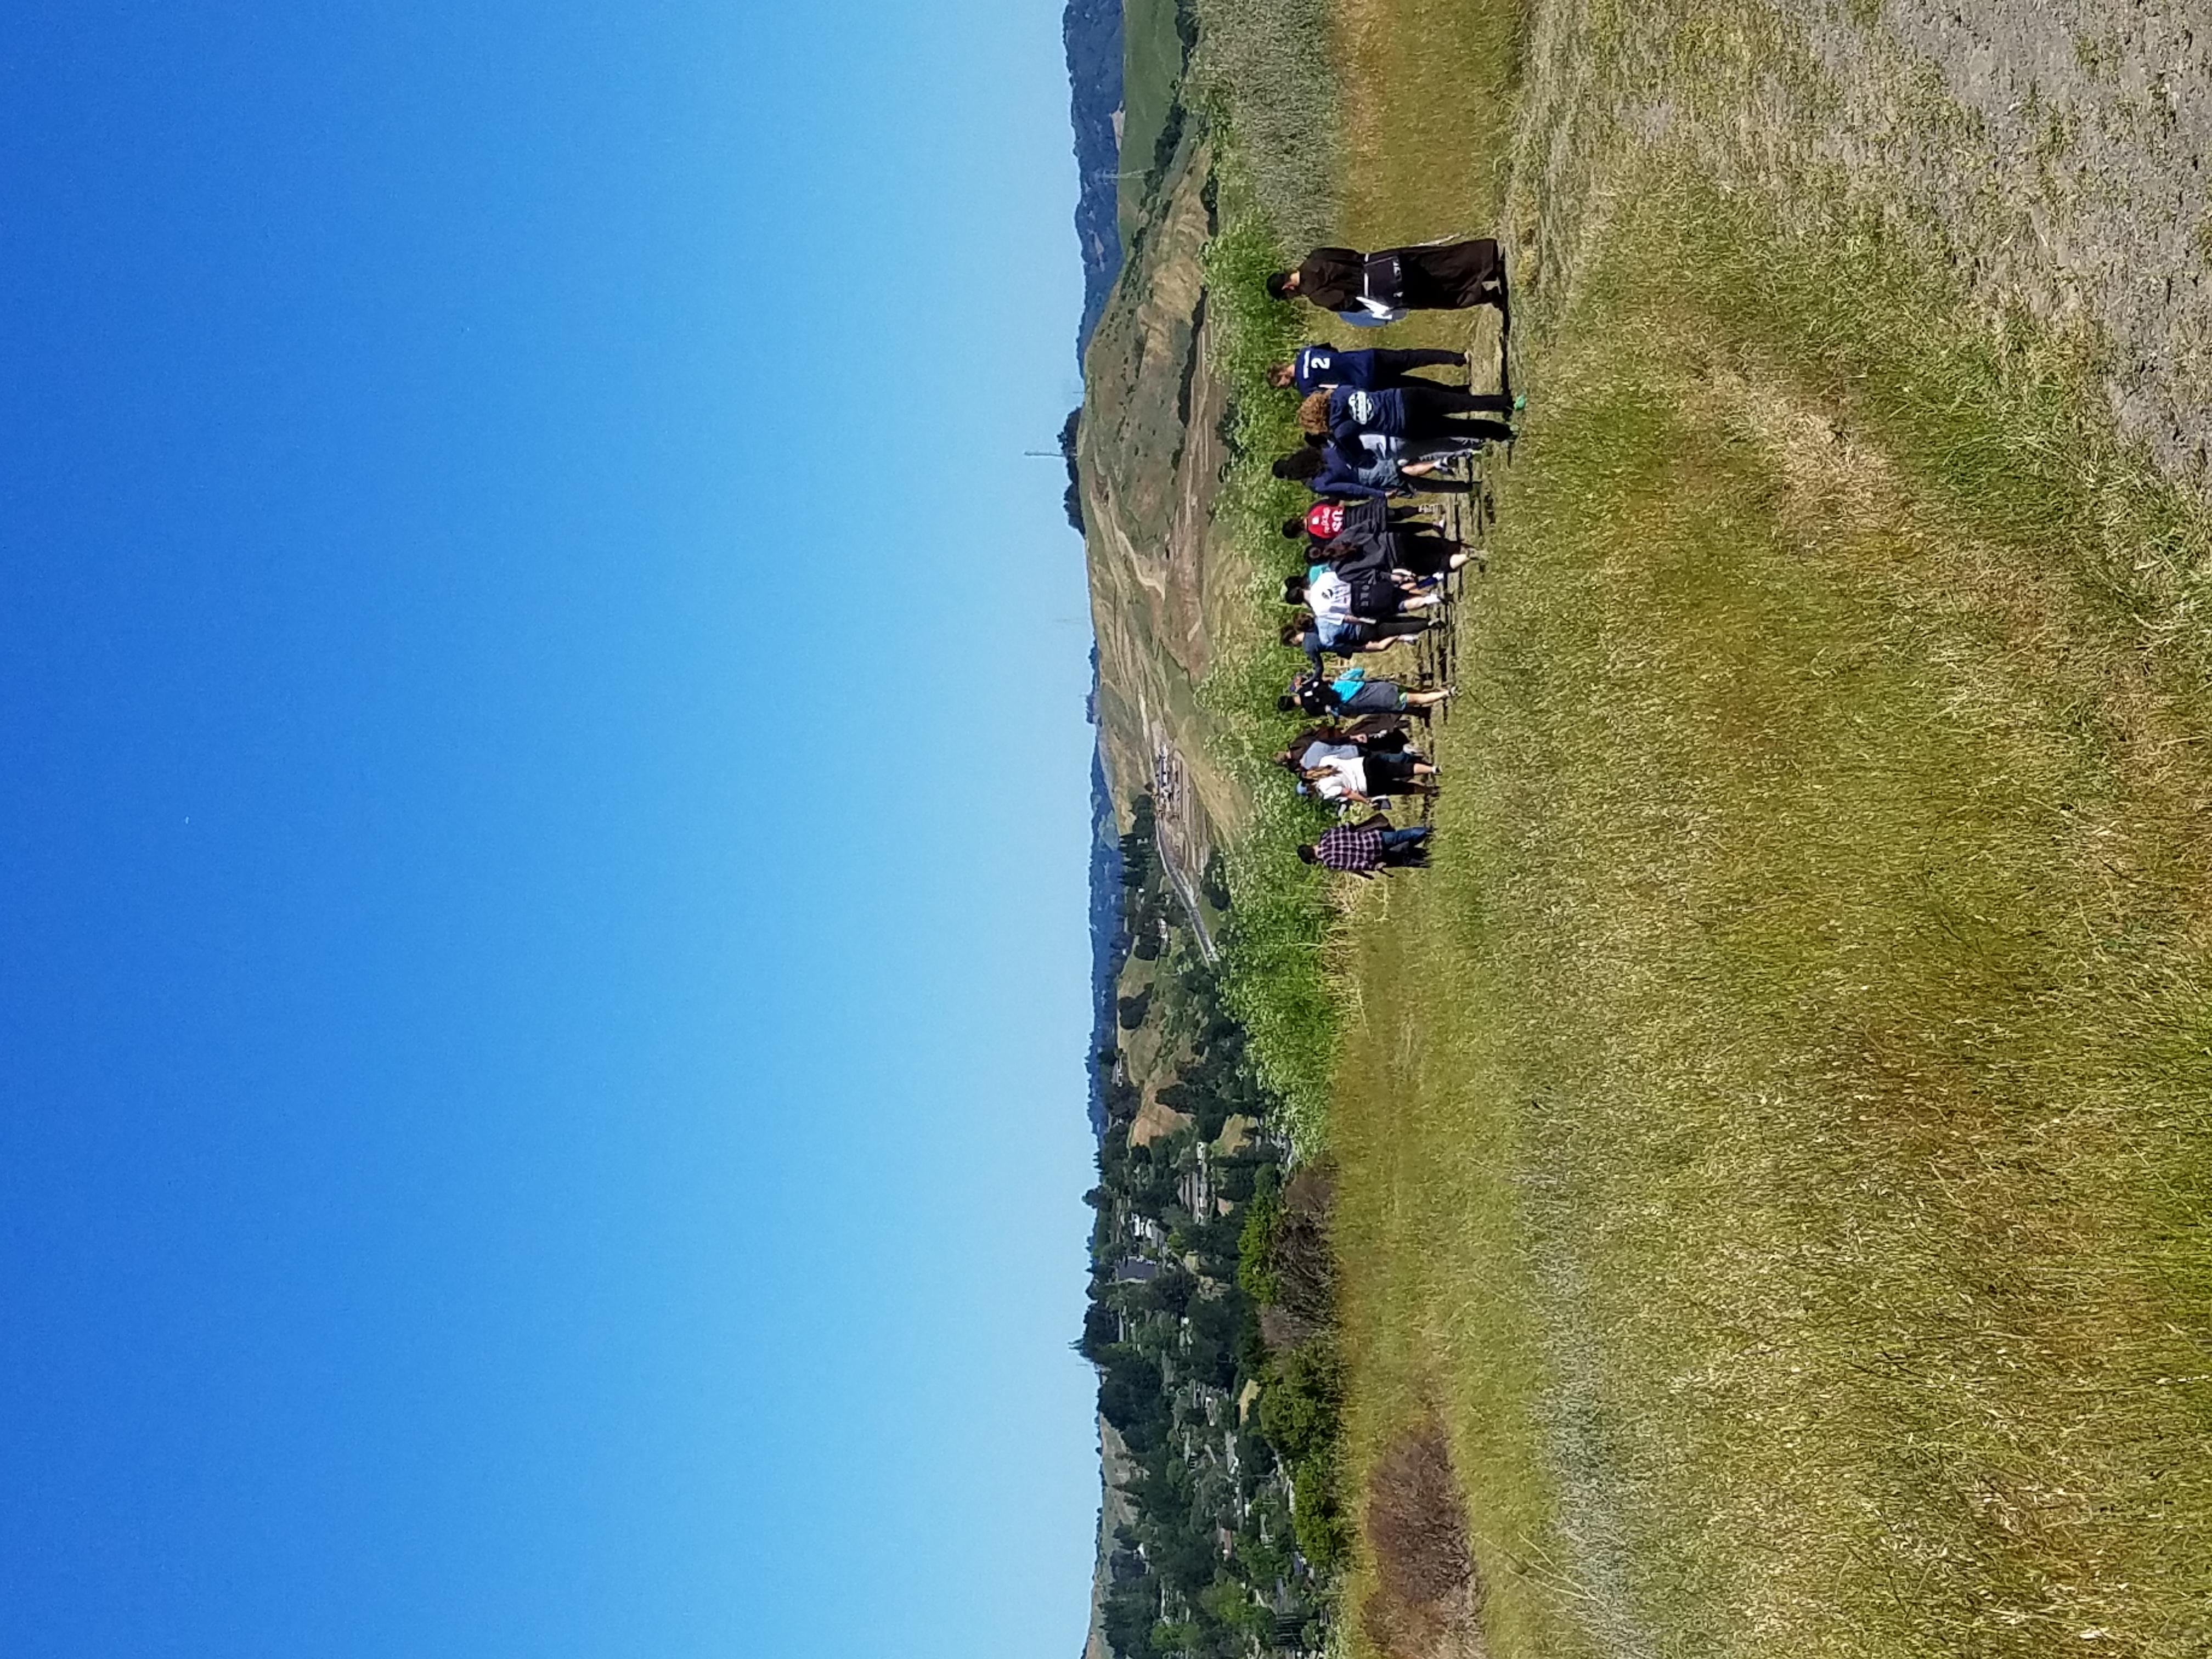 students hike through the hills of SMC and pray and worship together